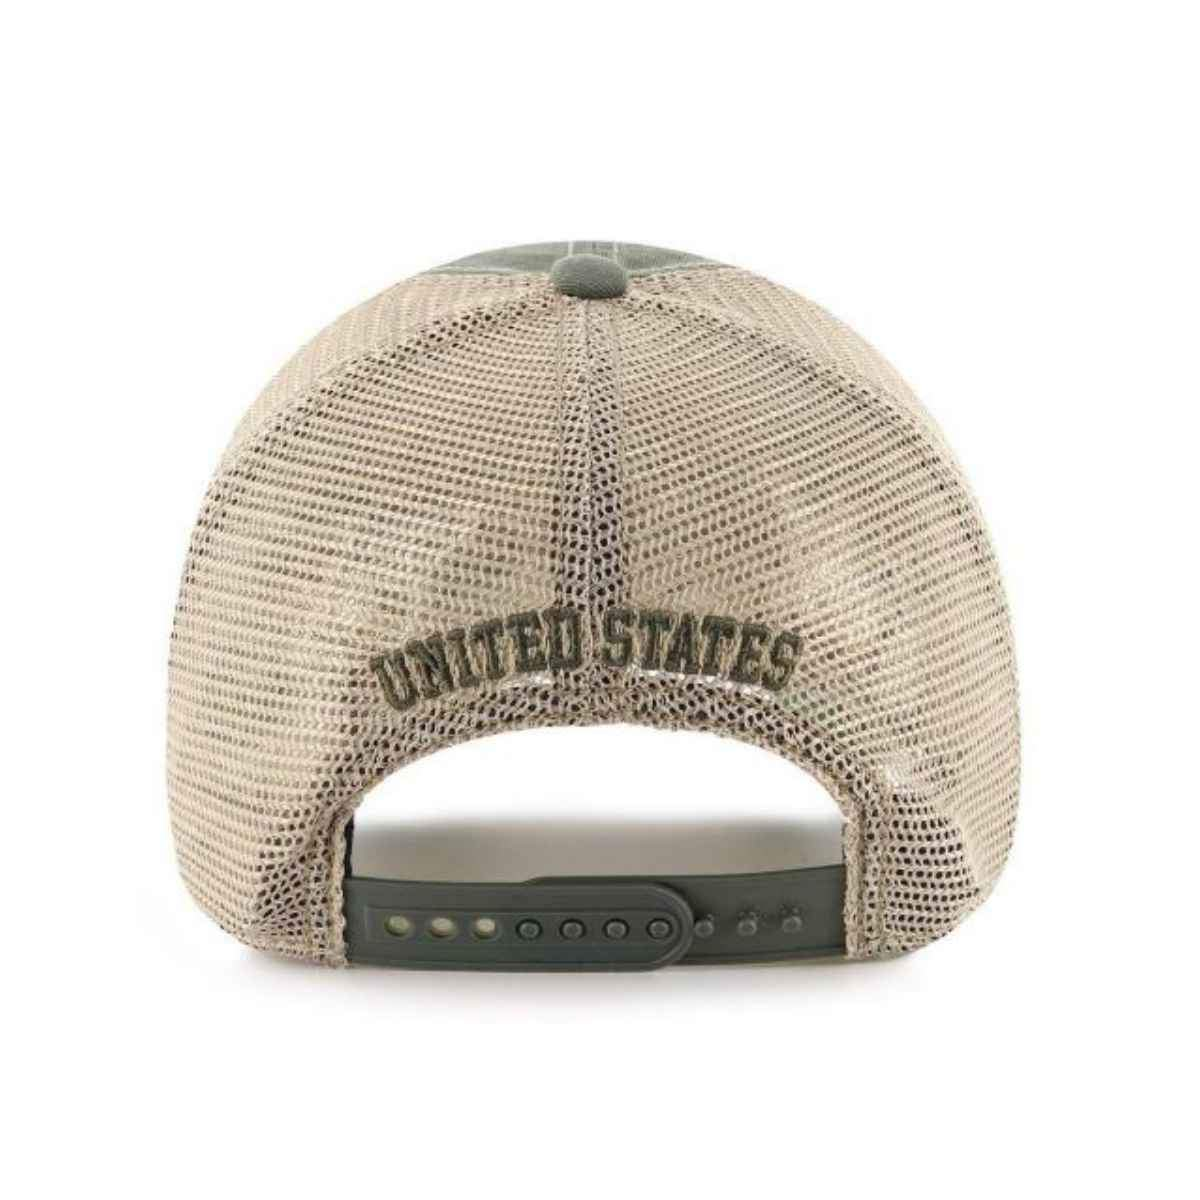 Operation Hat Trick OHT American Flag 47 Brand Moss Trawler Mesh Relax Hat  Cap 93220cea4